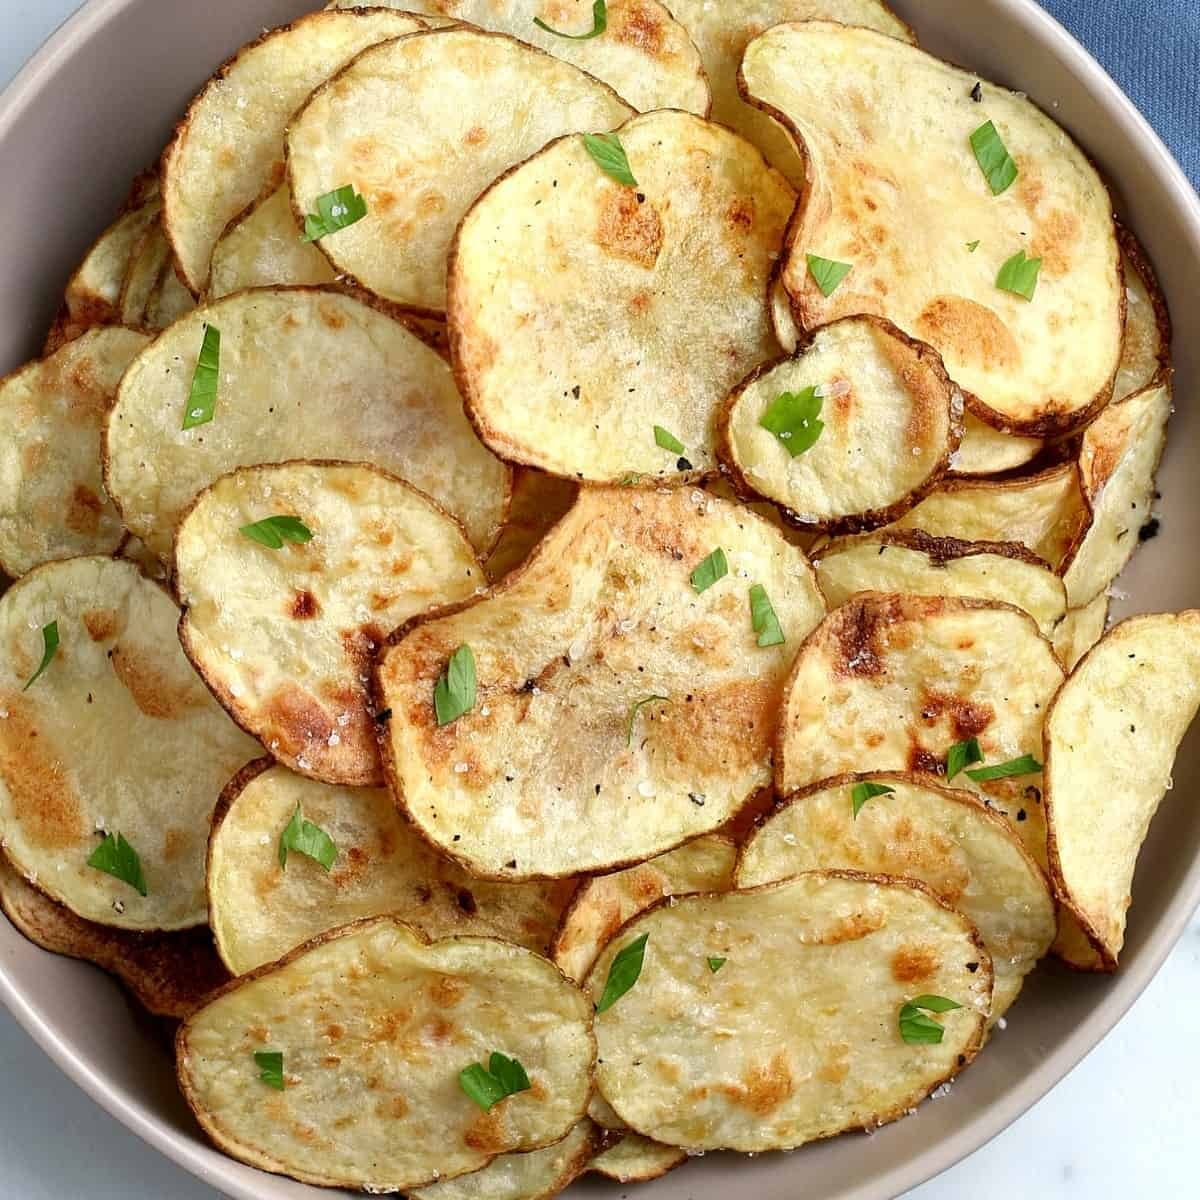 Potato Chips garnished with chives